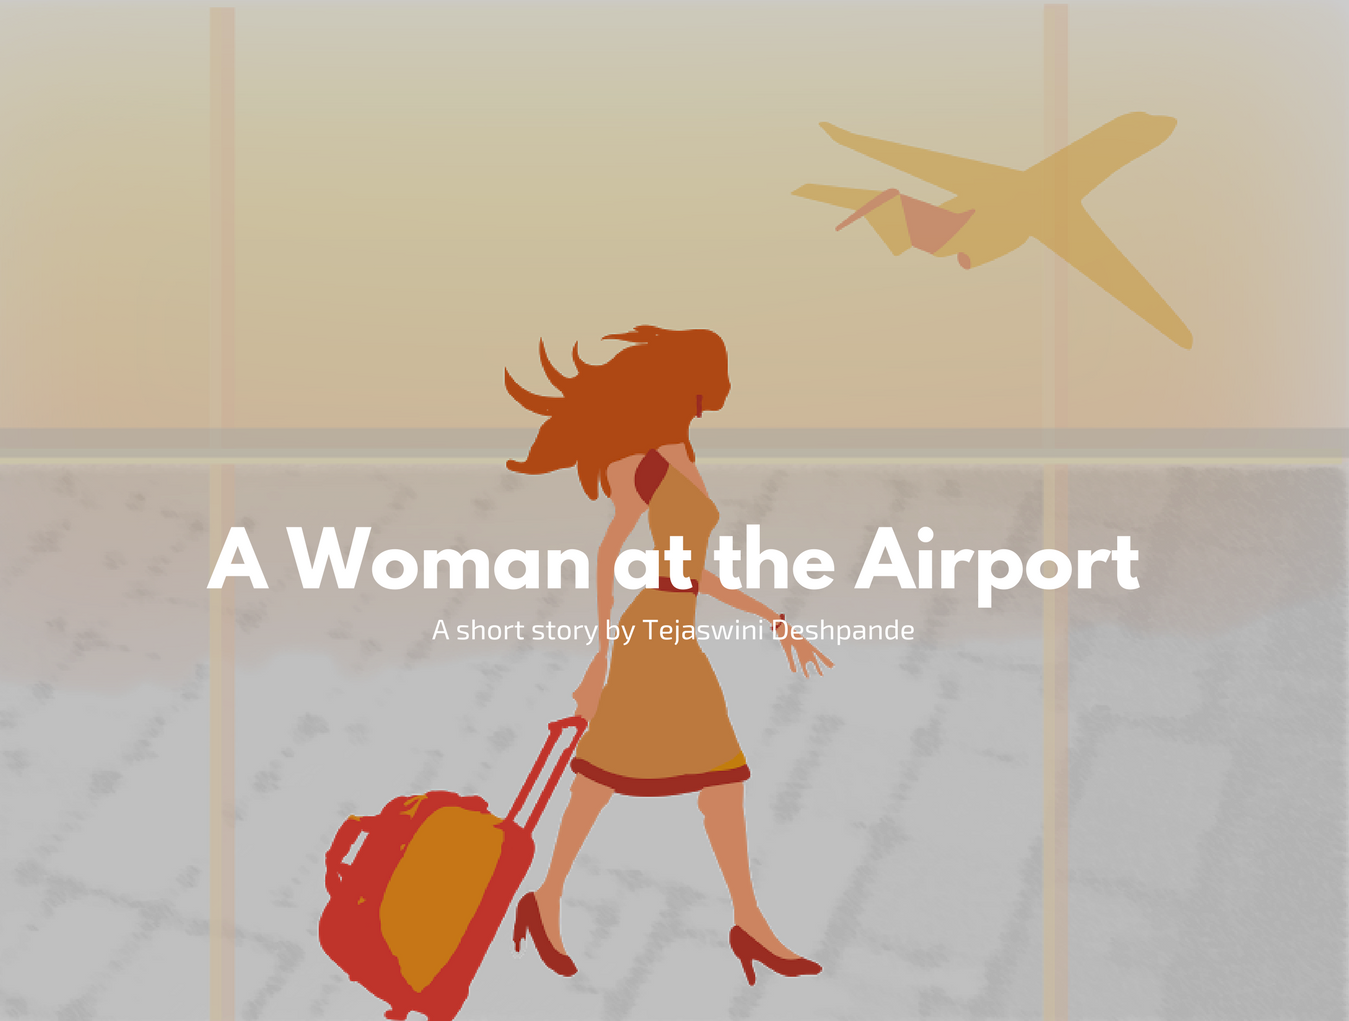 A Woman at the Airport